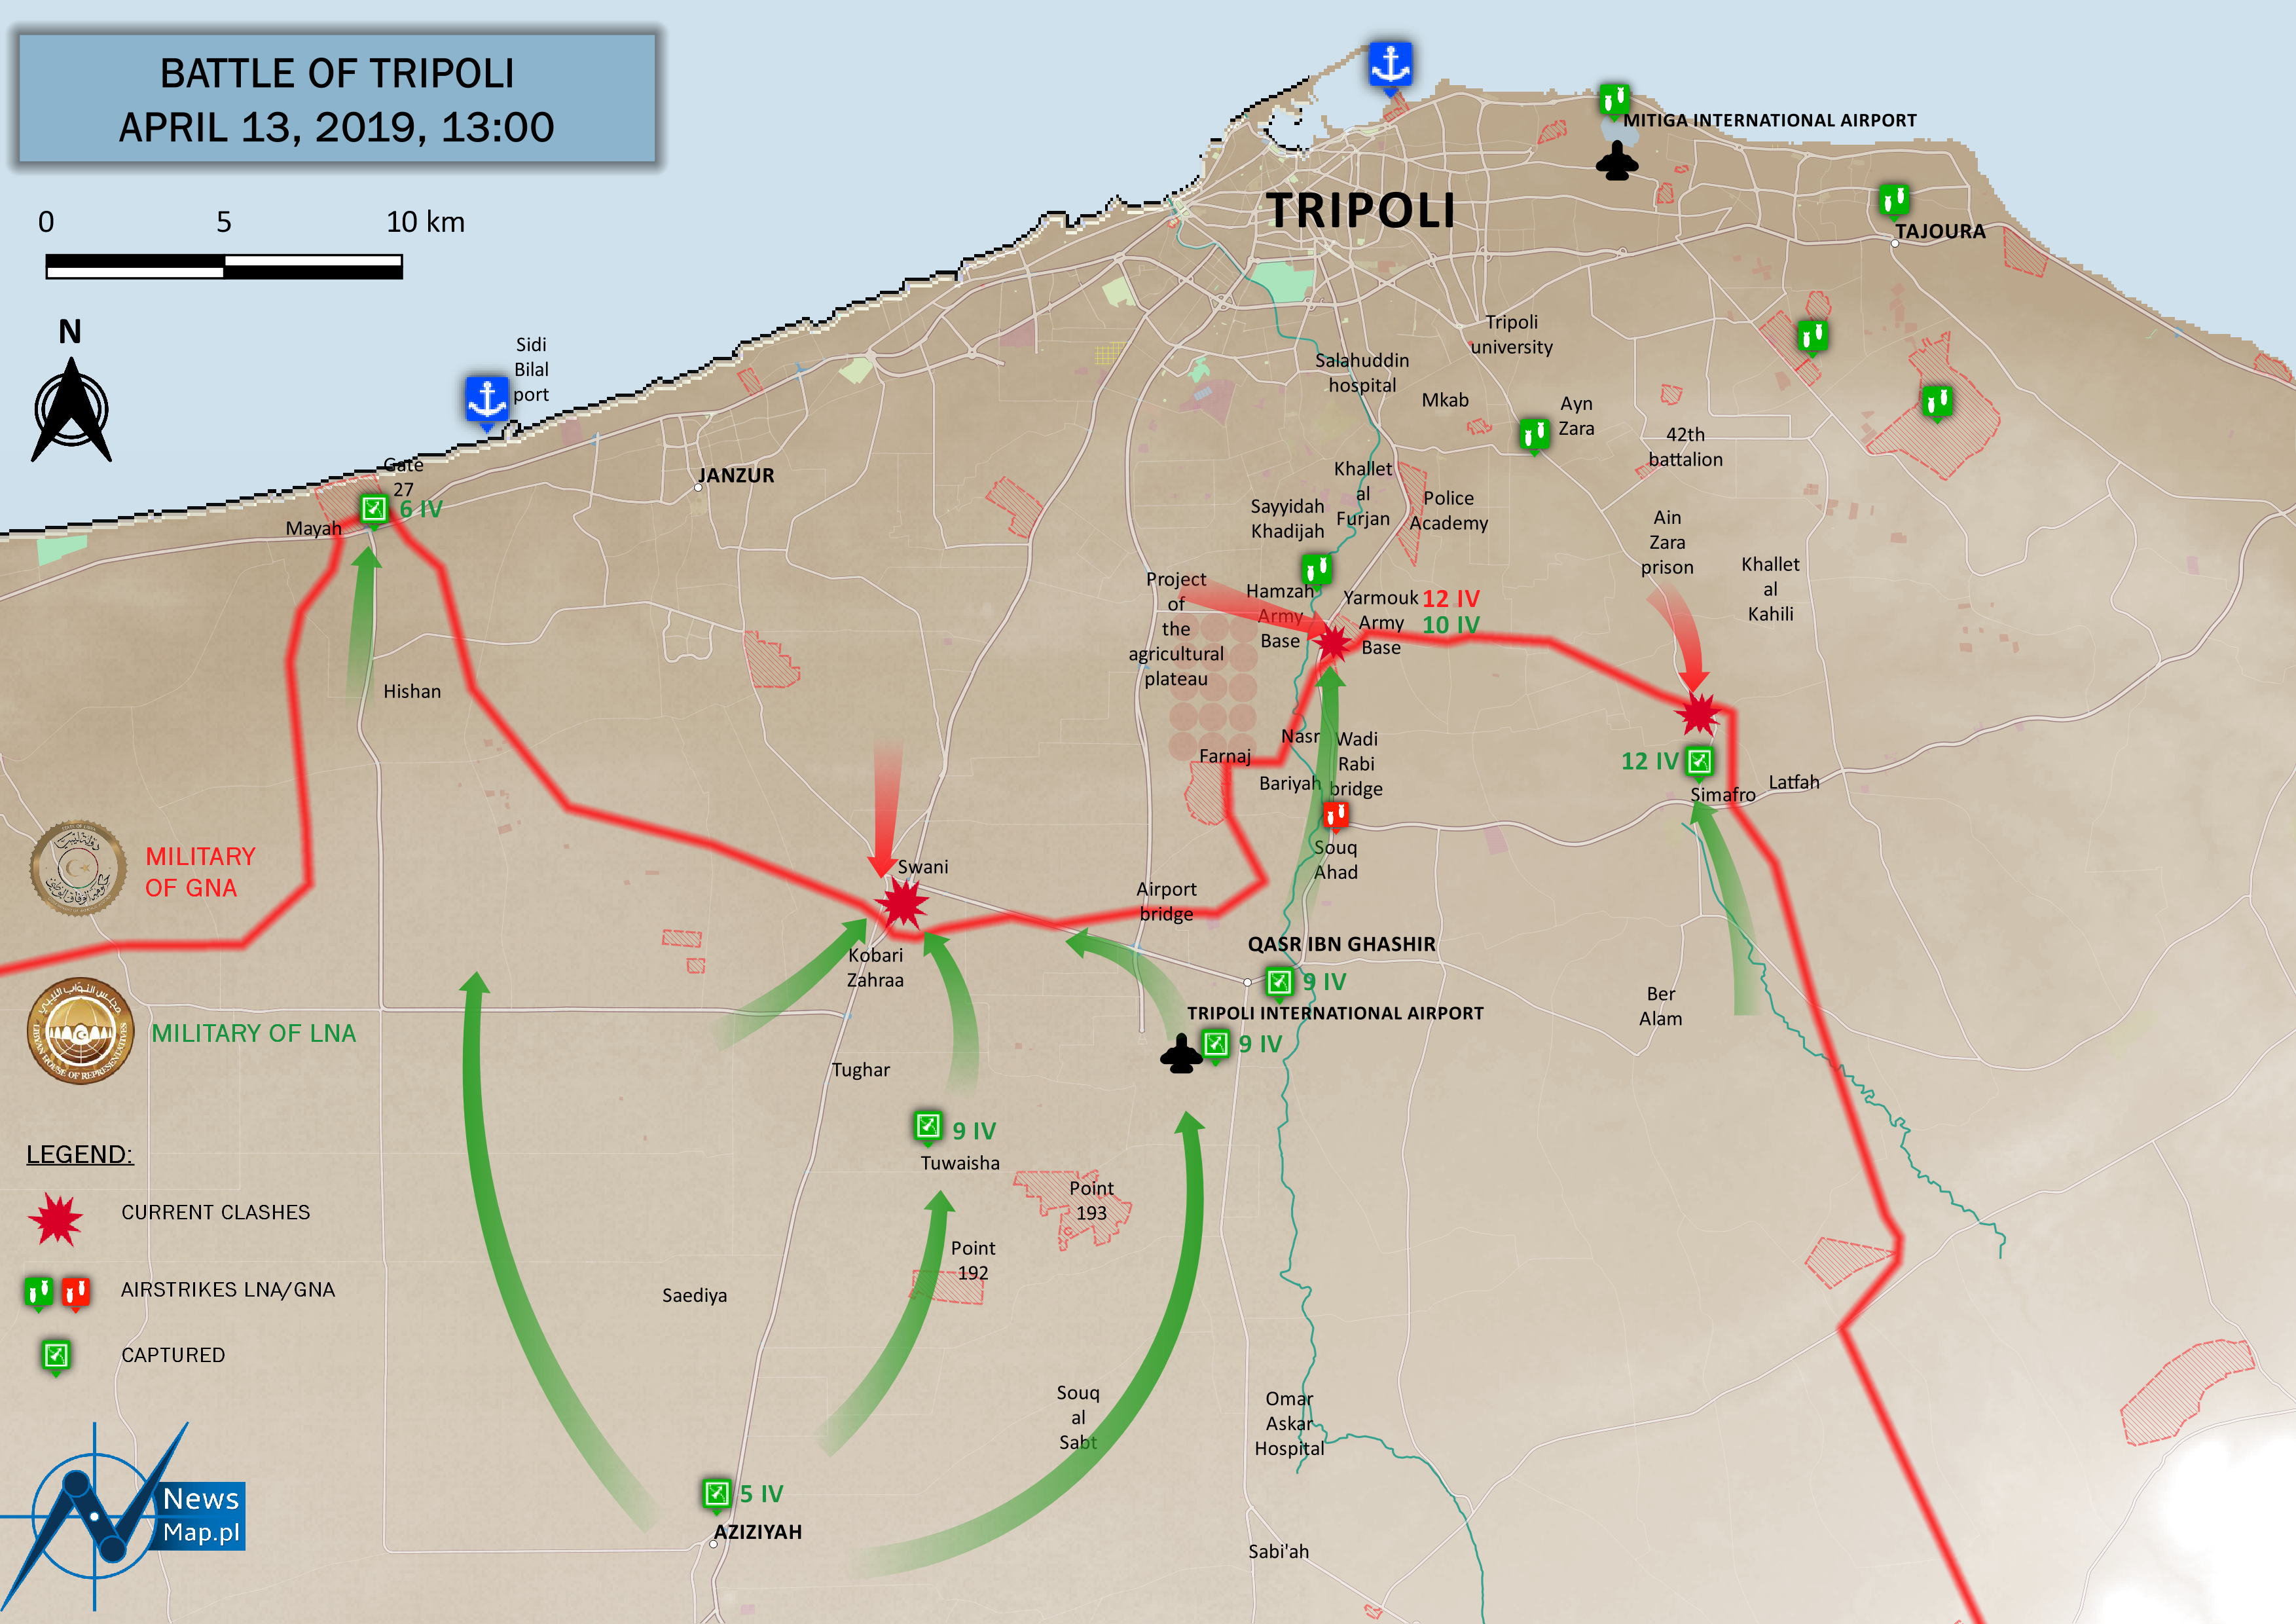 Battle of Tripoli - April 13, 2019